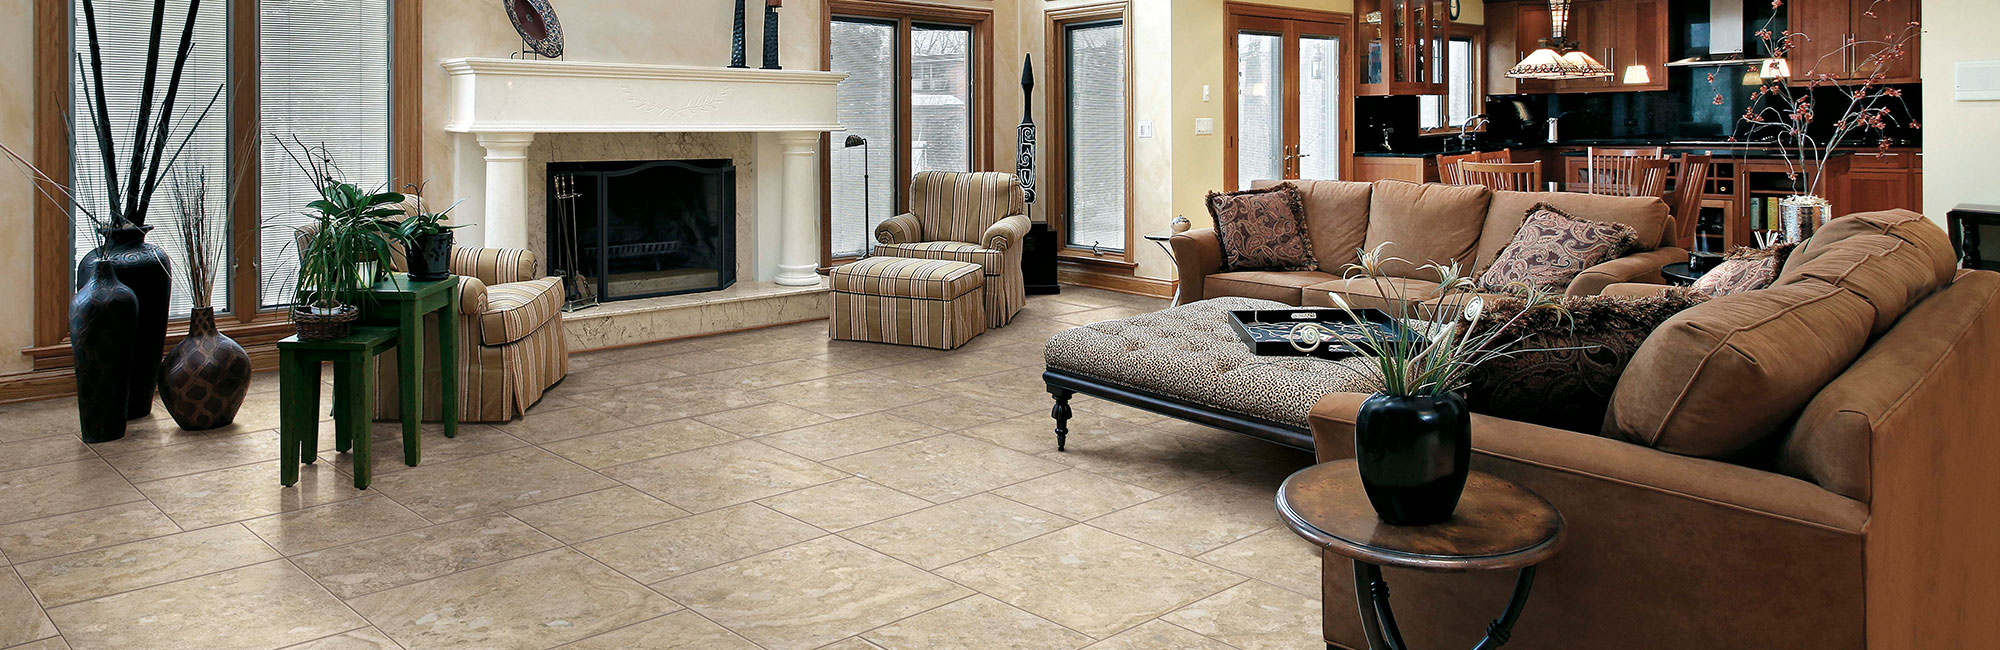 Home A World Of Tile - American tile dallas tx